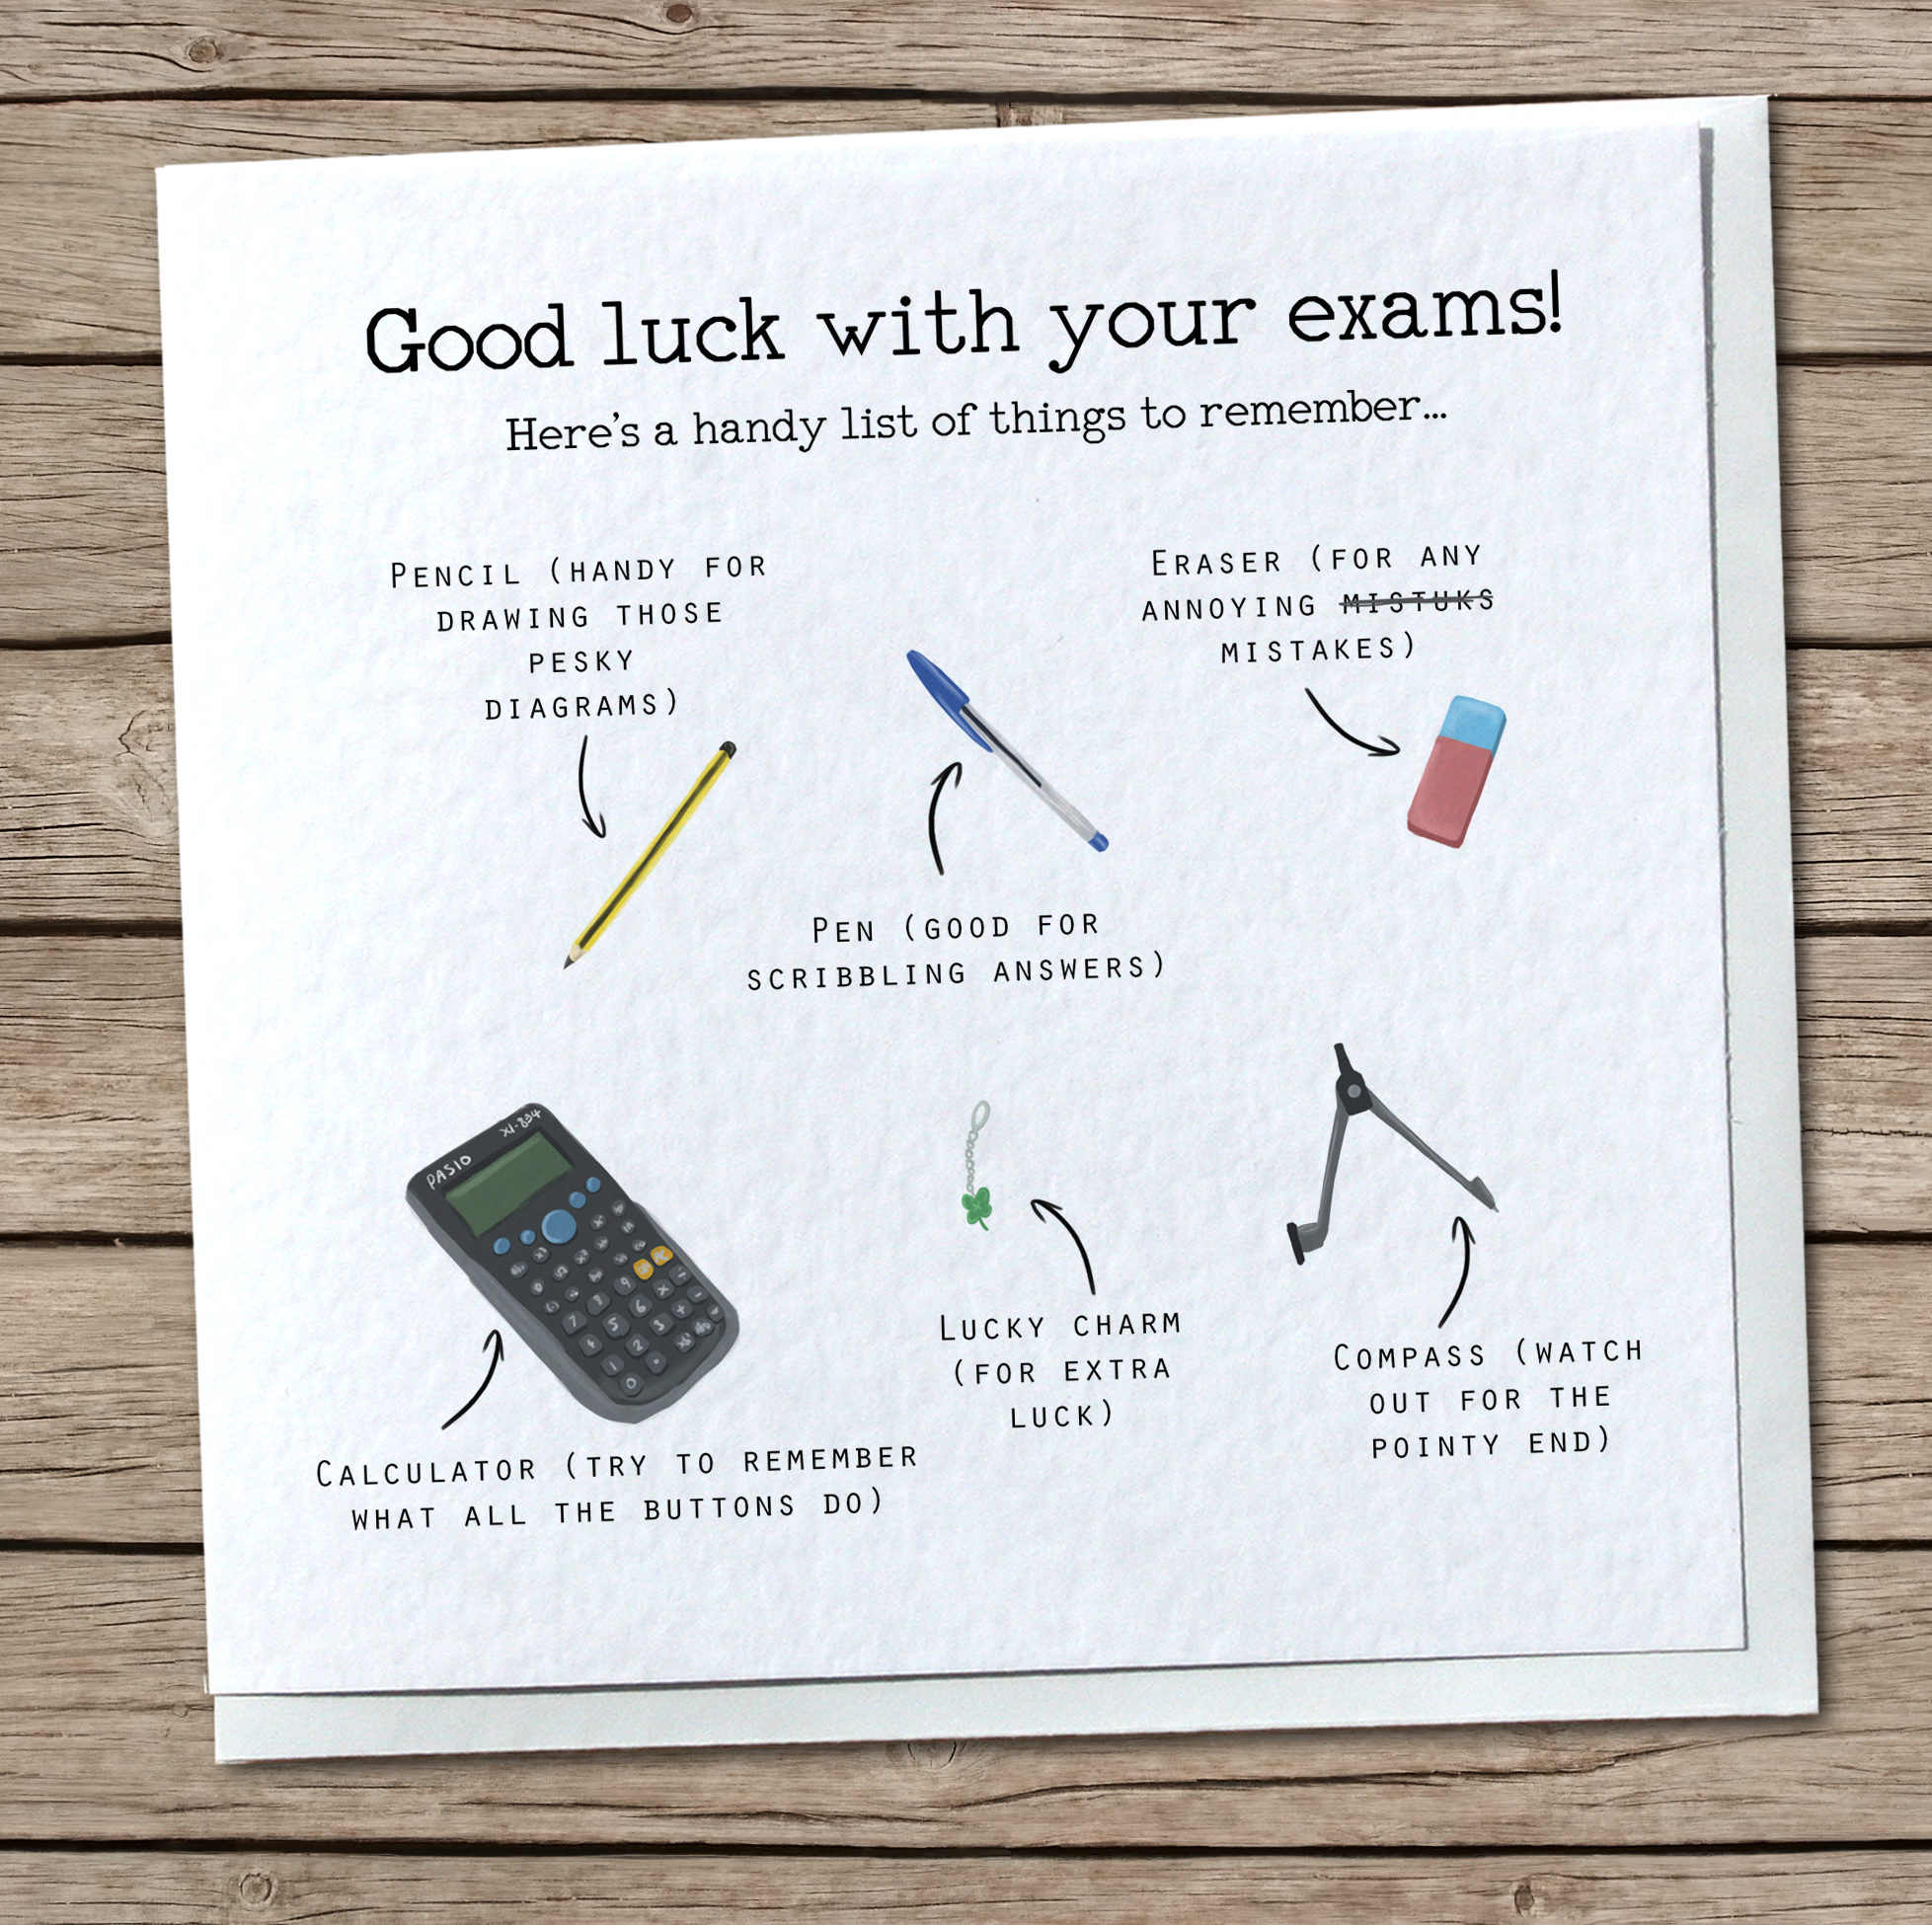 Exam List Greetings Card Good Luck With Exams Cute Cool Etsy